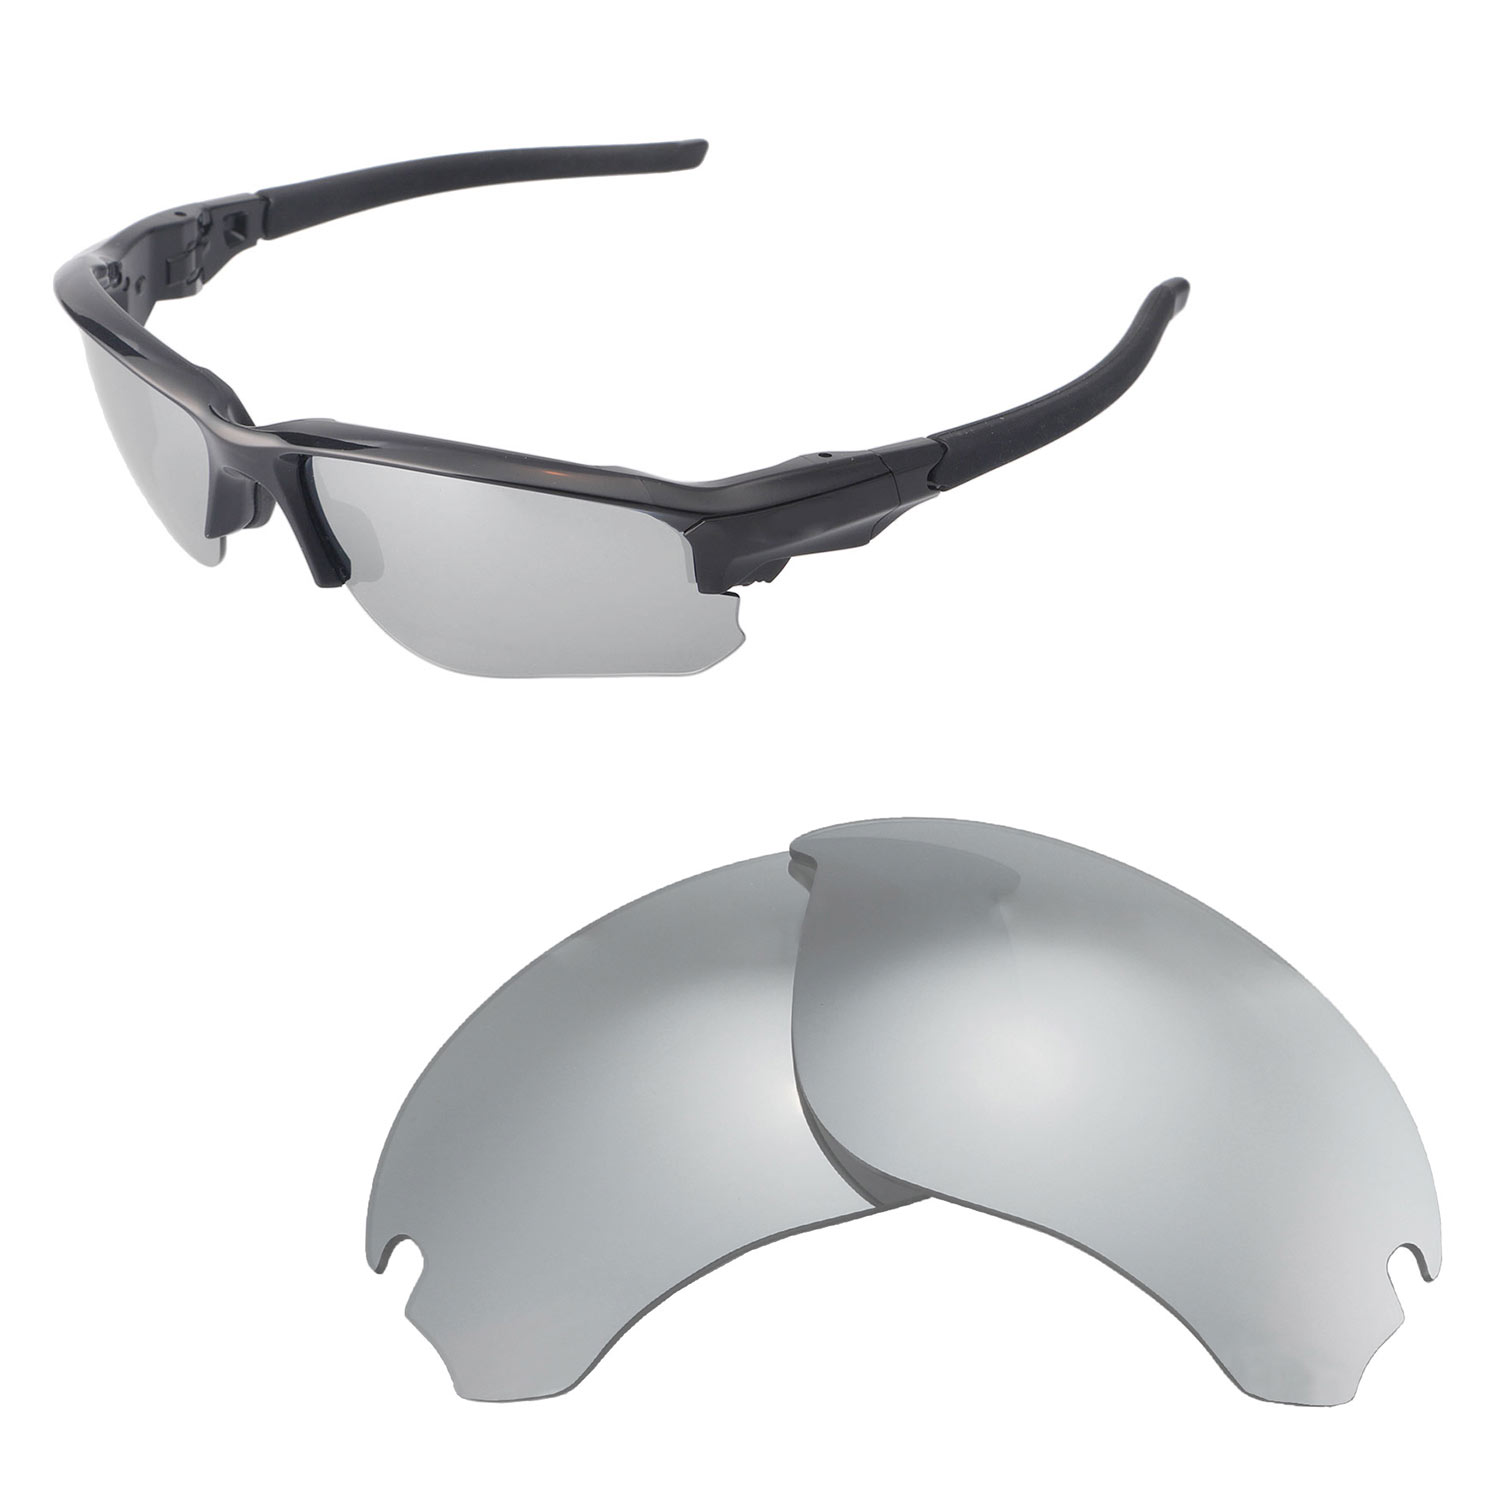 0402c2e83e8 Details about Walleva Titanium Polarized Replacement Lenses For Oakley Flak  Draft Sunglasses